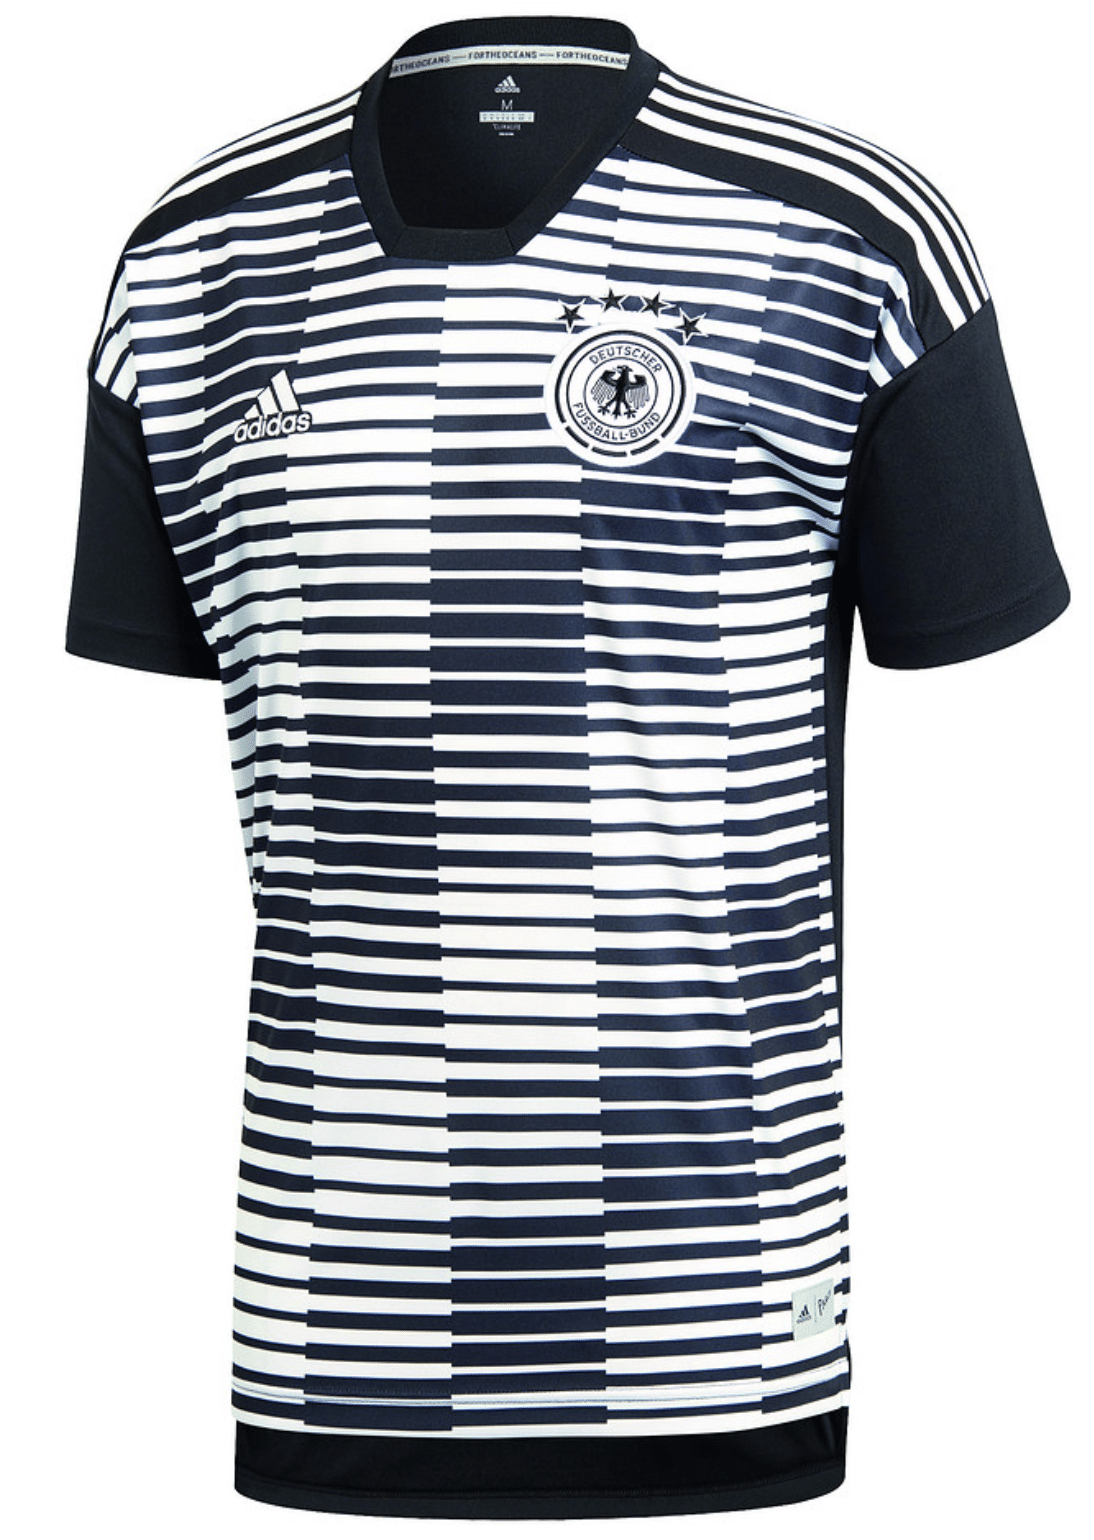 dfb pre match shirt 2018 und aufw rm trikot von adidas drittes trikot von deutschland. Black Bedroom Furniture Sets. Home Design Ideas